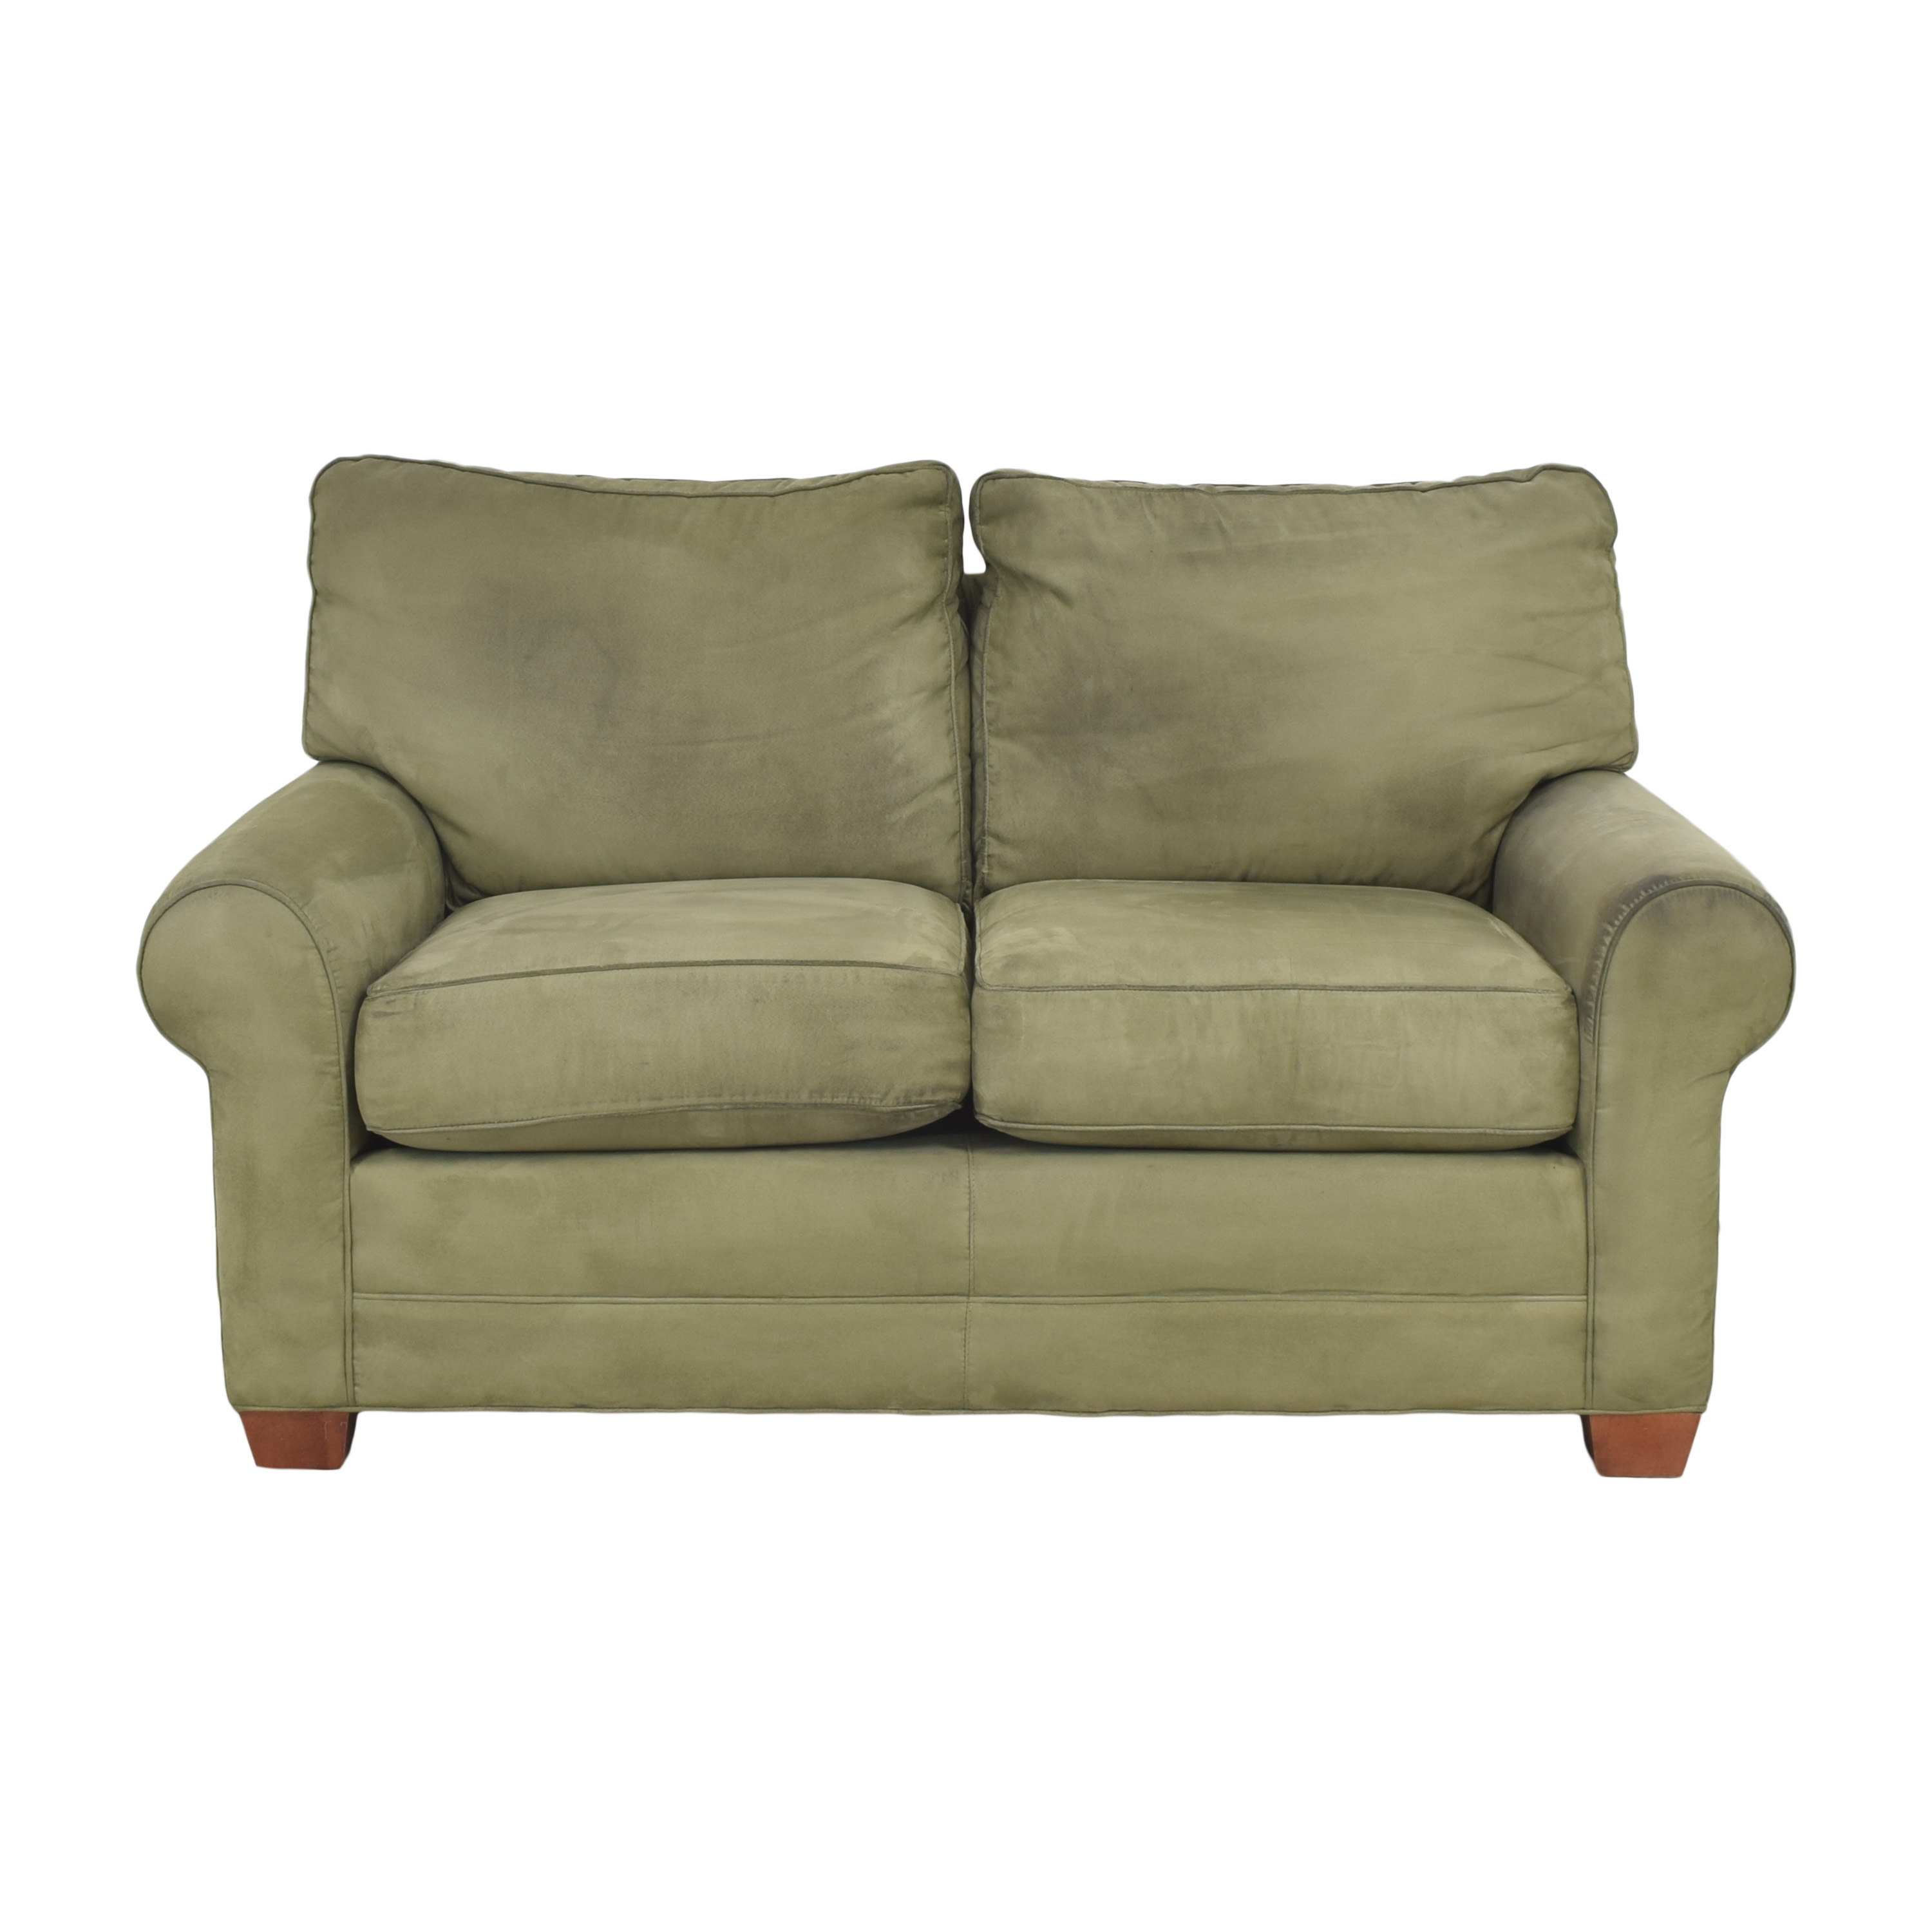 shop Masterfield Furniture Masterfield Two Cushion Loveseat online